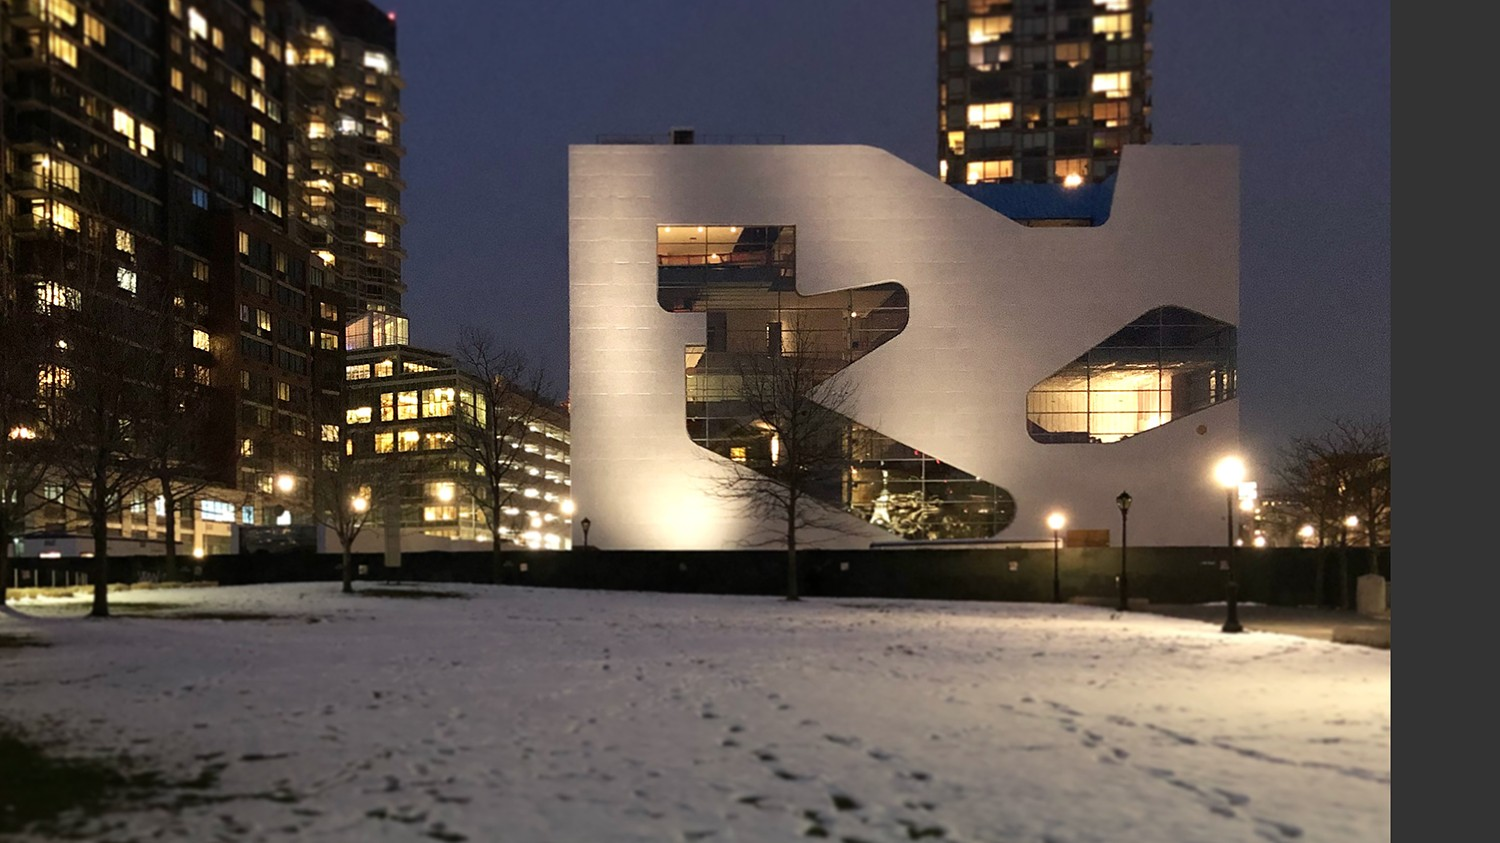 https://s3.us-east-2.amazonaws.com/steven-holl/uploads/projects/project-images/StevenHollArchitects_HPL_Apr02-2018_WH_.jpg